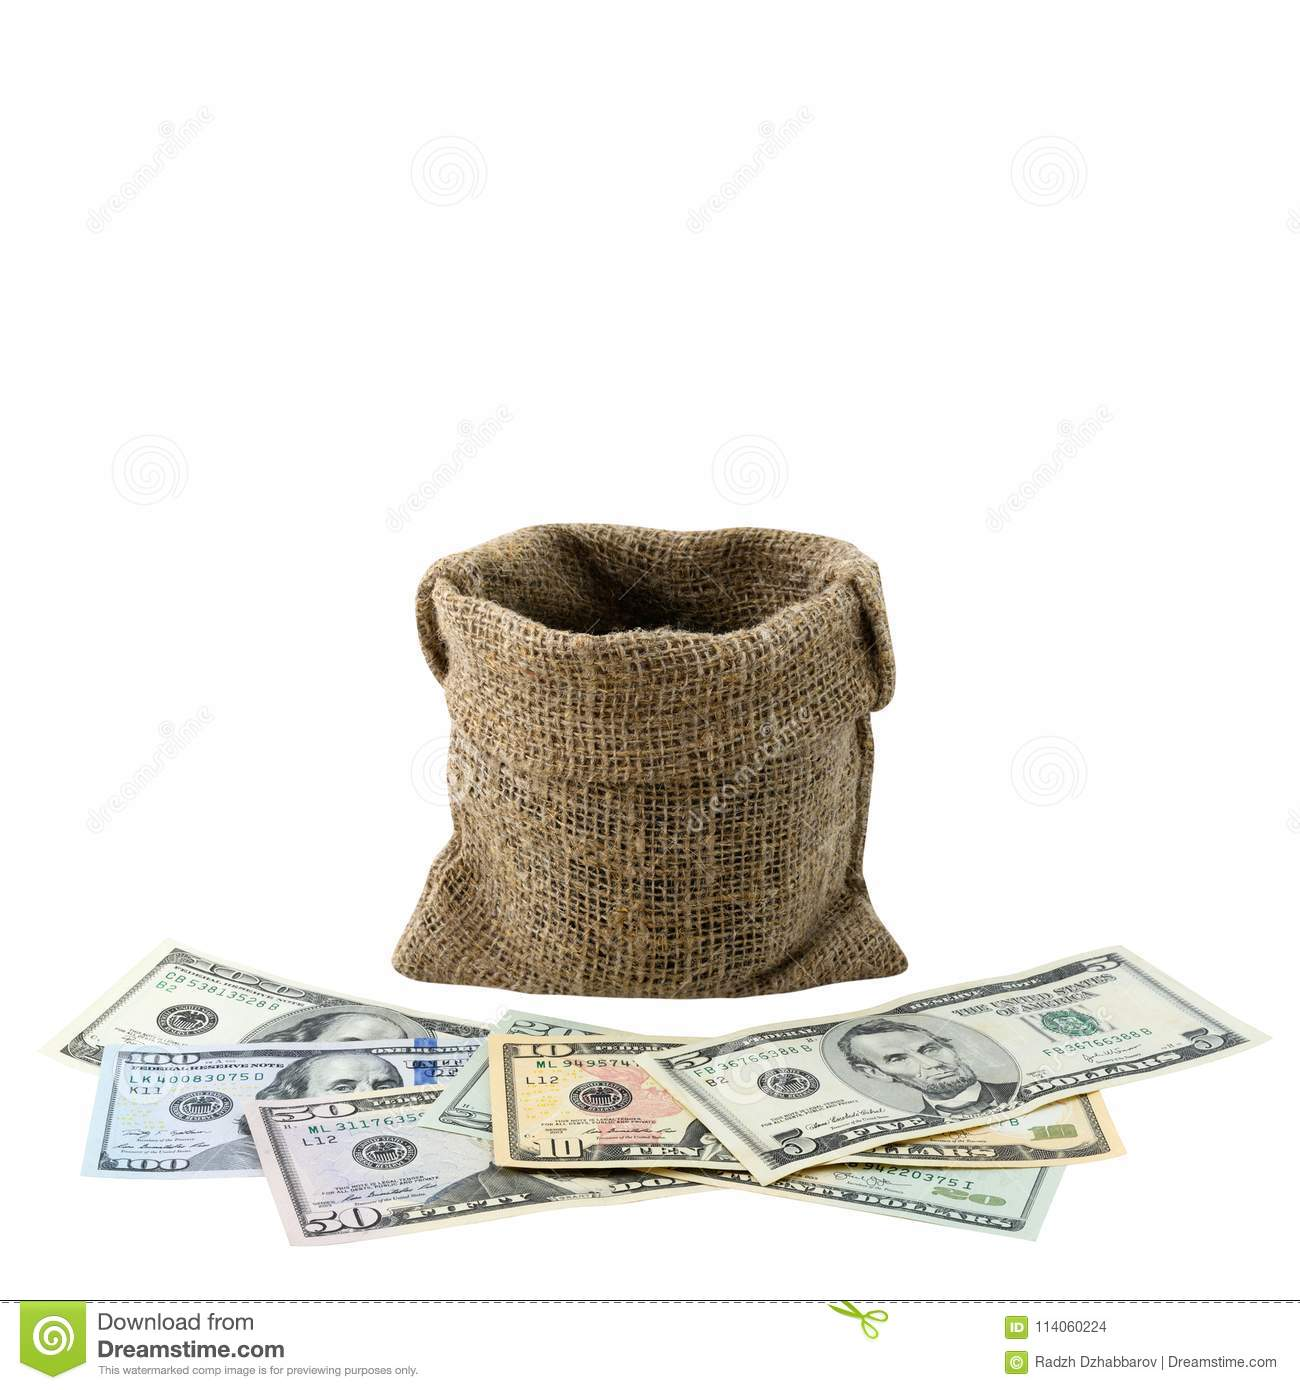 American money 5,10, 20, 50, new 100 dollar bill and empty bag isolated on white background clipping path. Pile US banknote